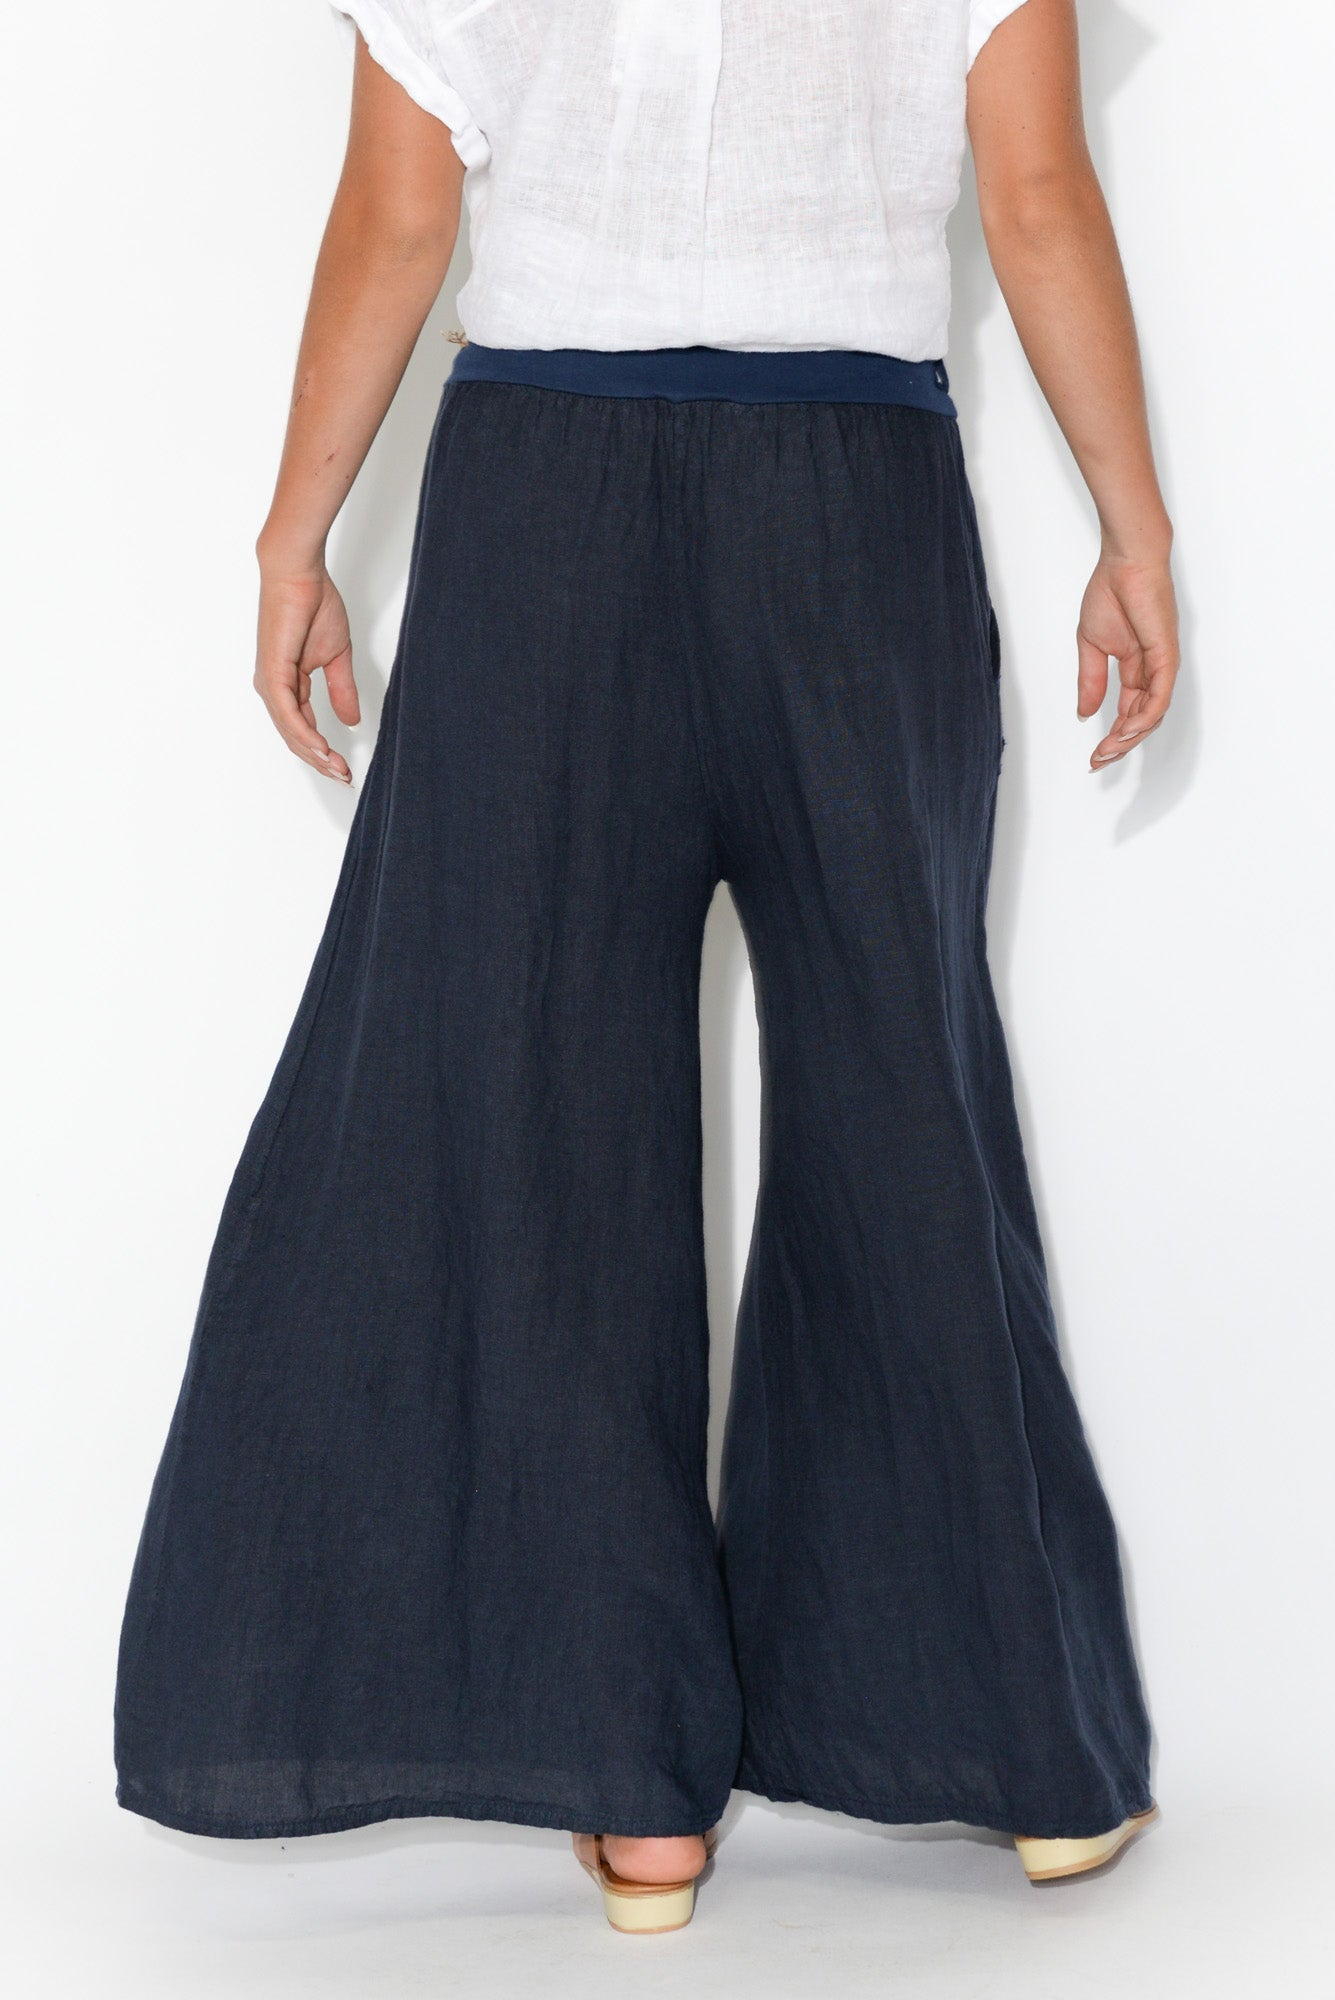 Lively Navy Linen Pant